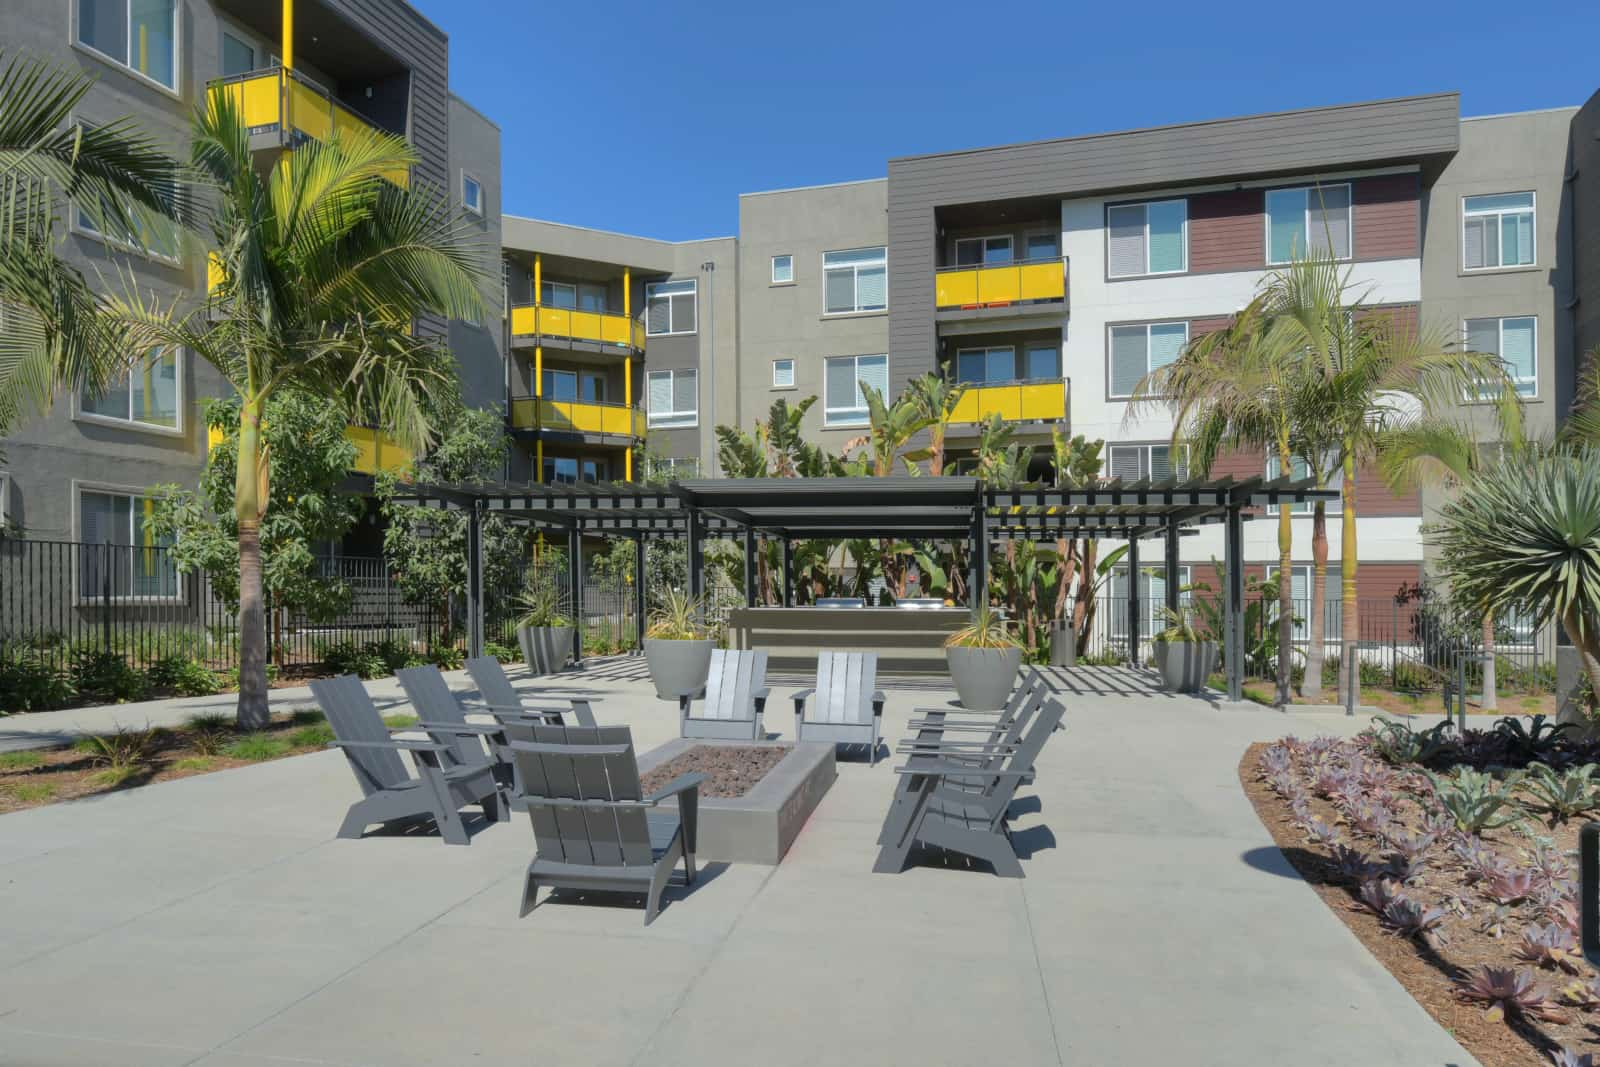 Exterior of apartment building courtyard with adirondack chairs, fire pit and gazebo in the background.